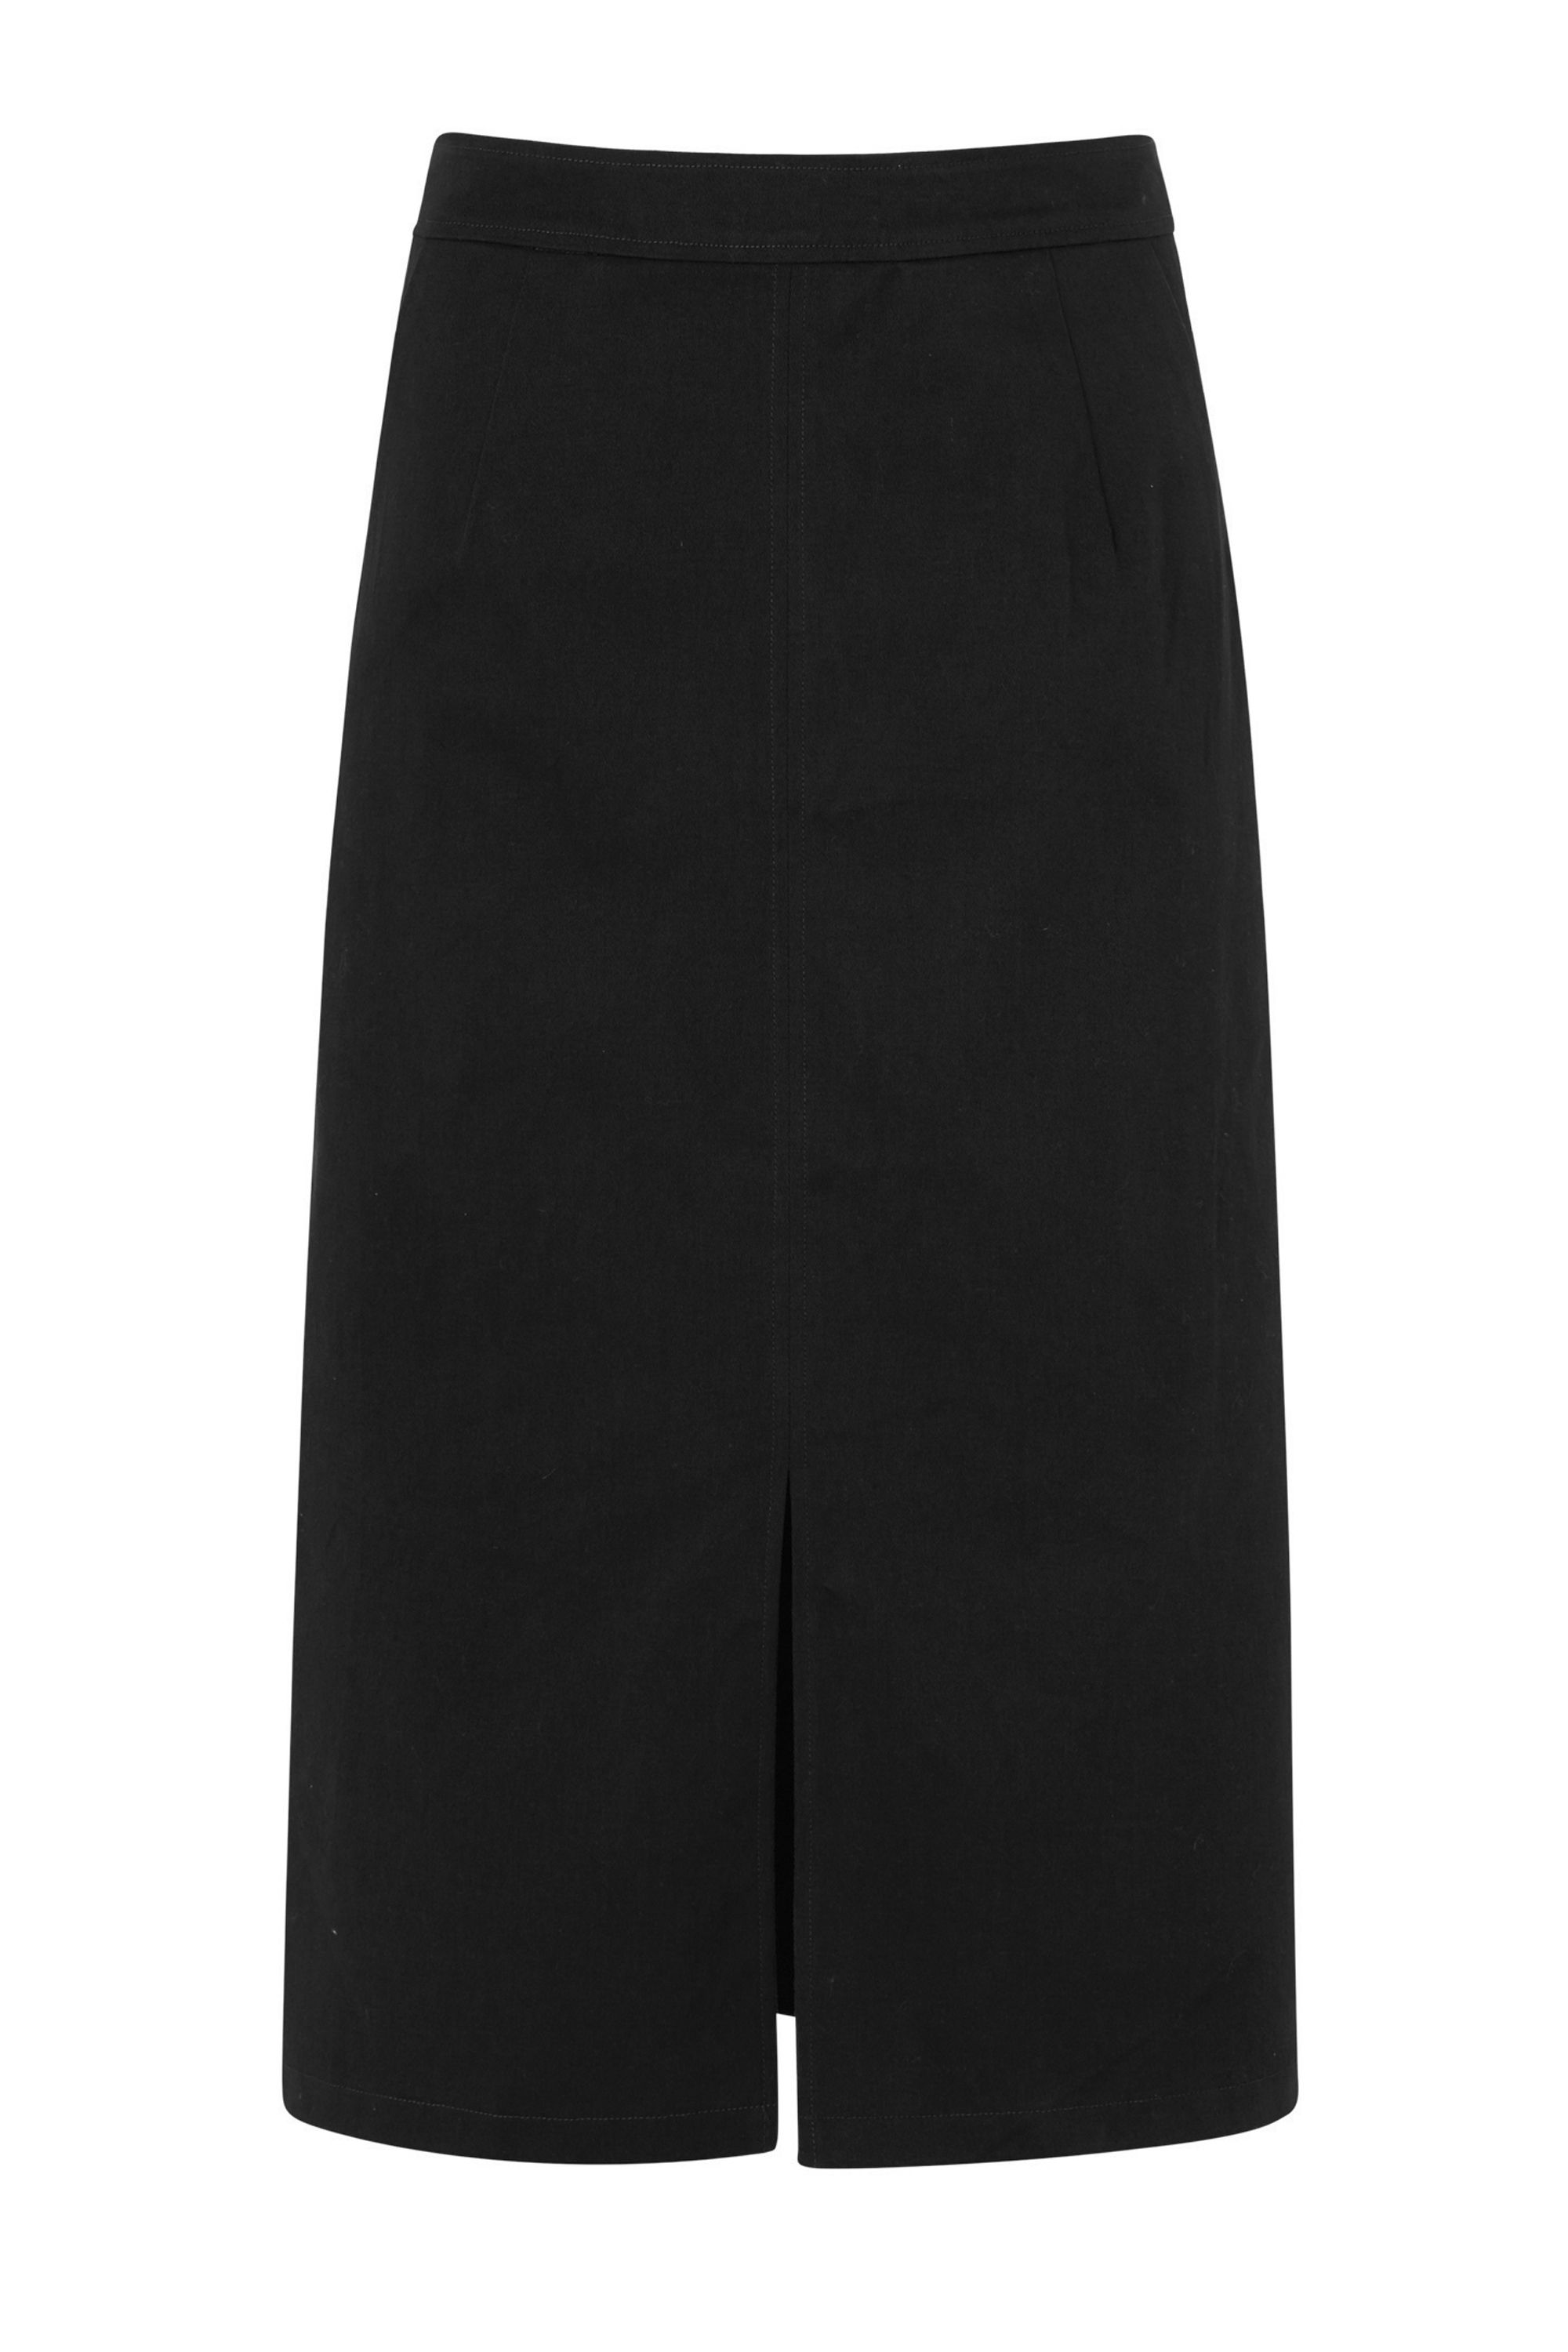 Sugarhill Boutique Bianca Midi Skirt, Black